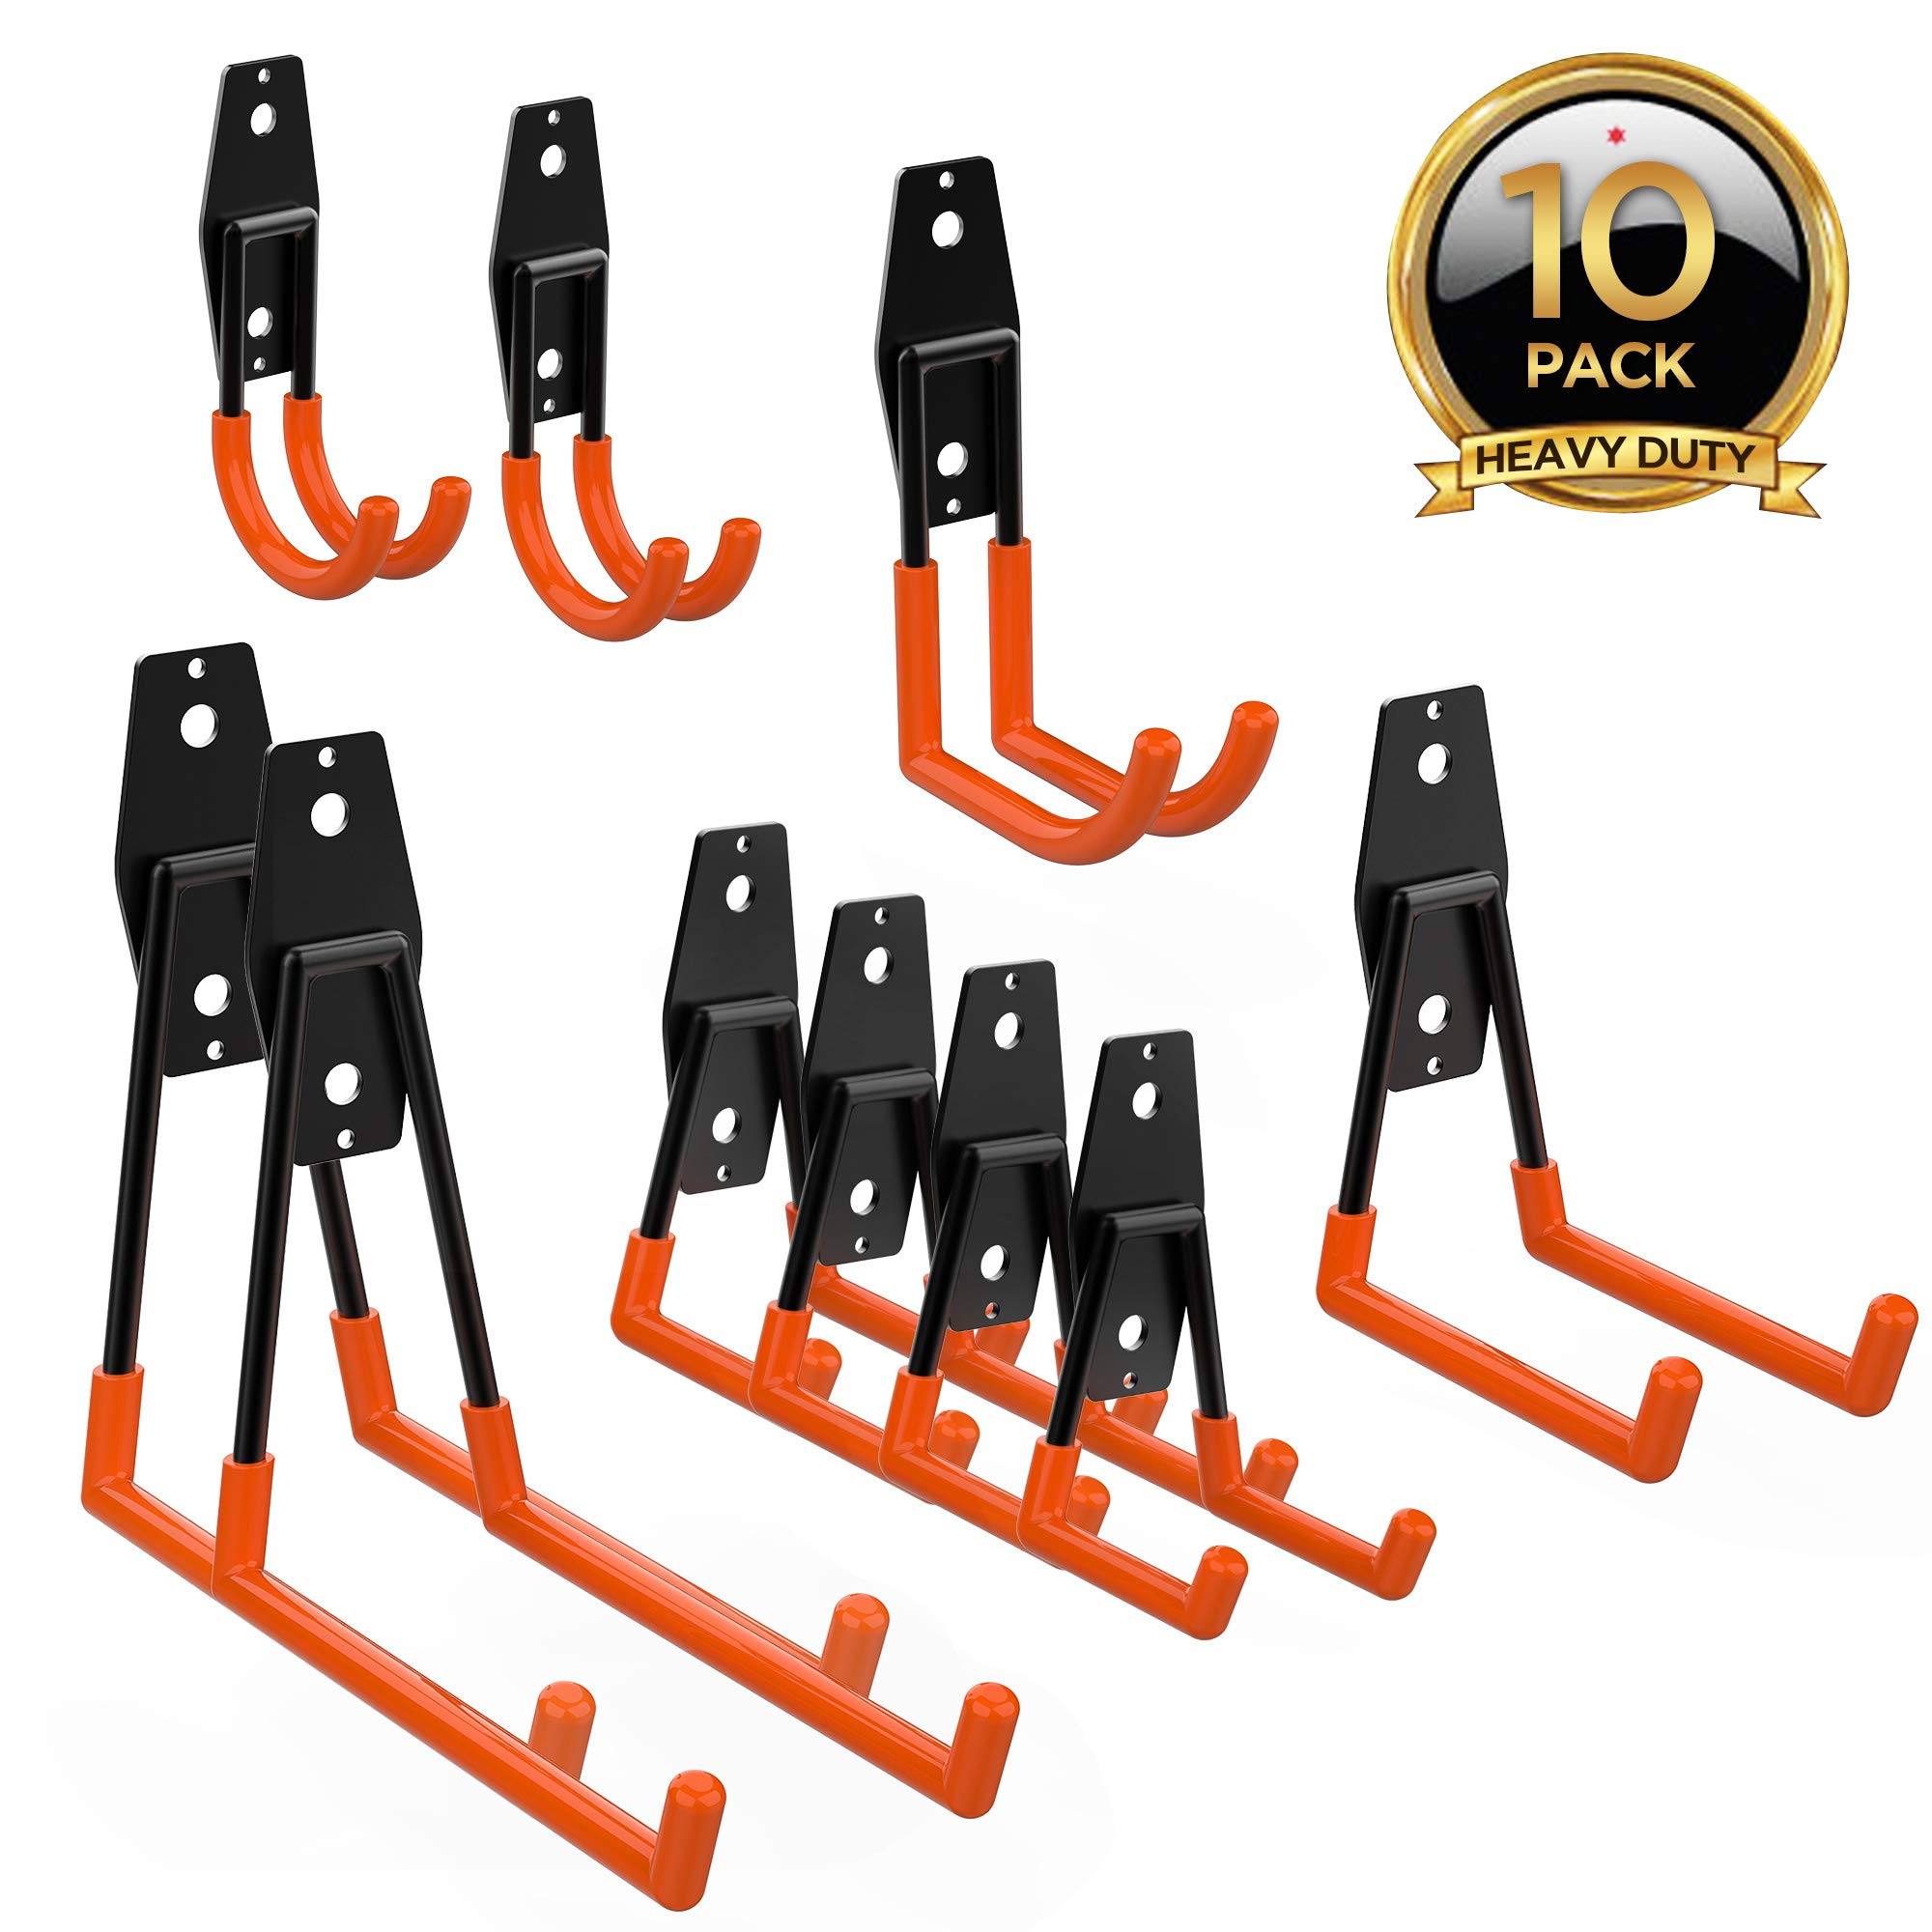 ORASANT 10-Pack Steel Garage Storage Utility Double Hooks, Heavy Duty for Organizing Power Tools, Ladders, Bulk items, Bikes, Ropes etc. by ORASANT